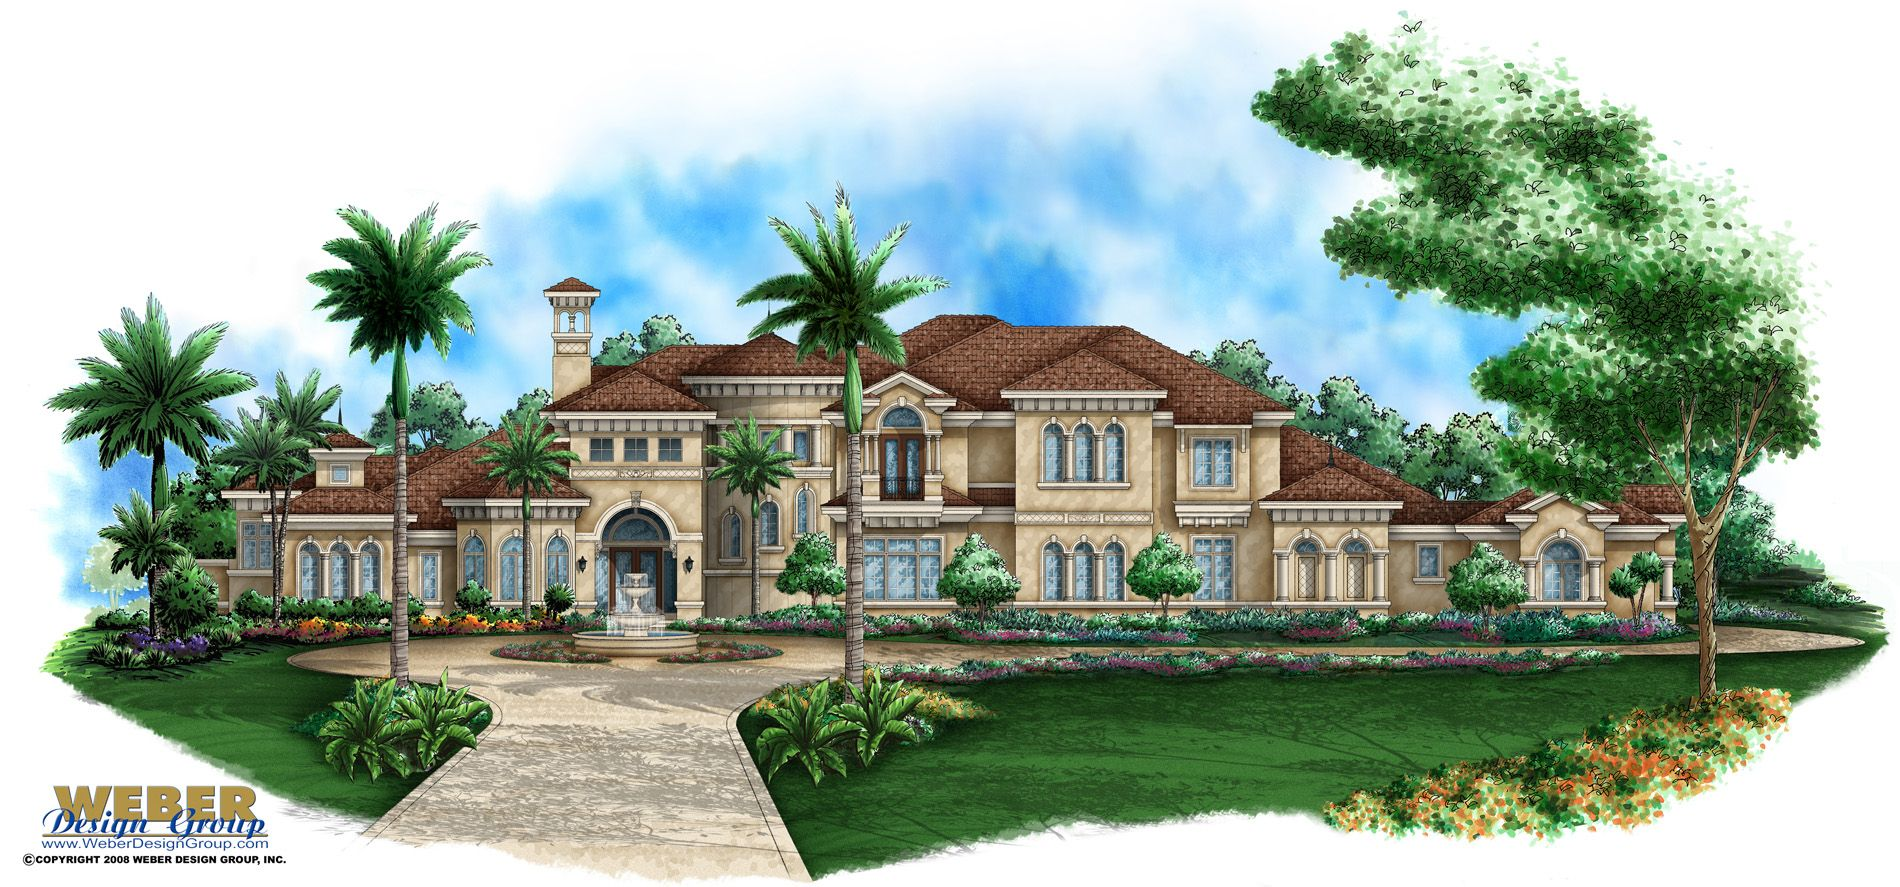 Casa Hermosa House Plan Spanish Mediterranean Mansion Floor Plan With Tuscan Architectural Influen Mansion Floor Plan Mediterranean Mansion Tuscan House Plans